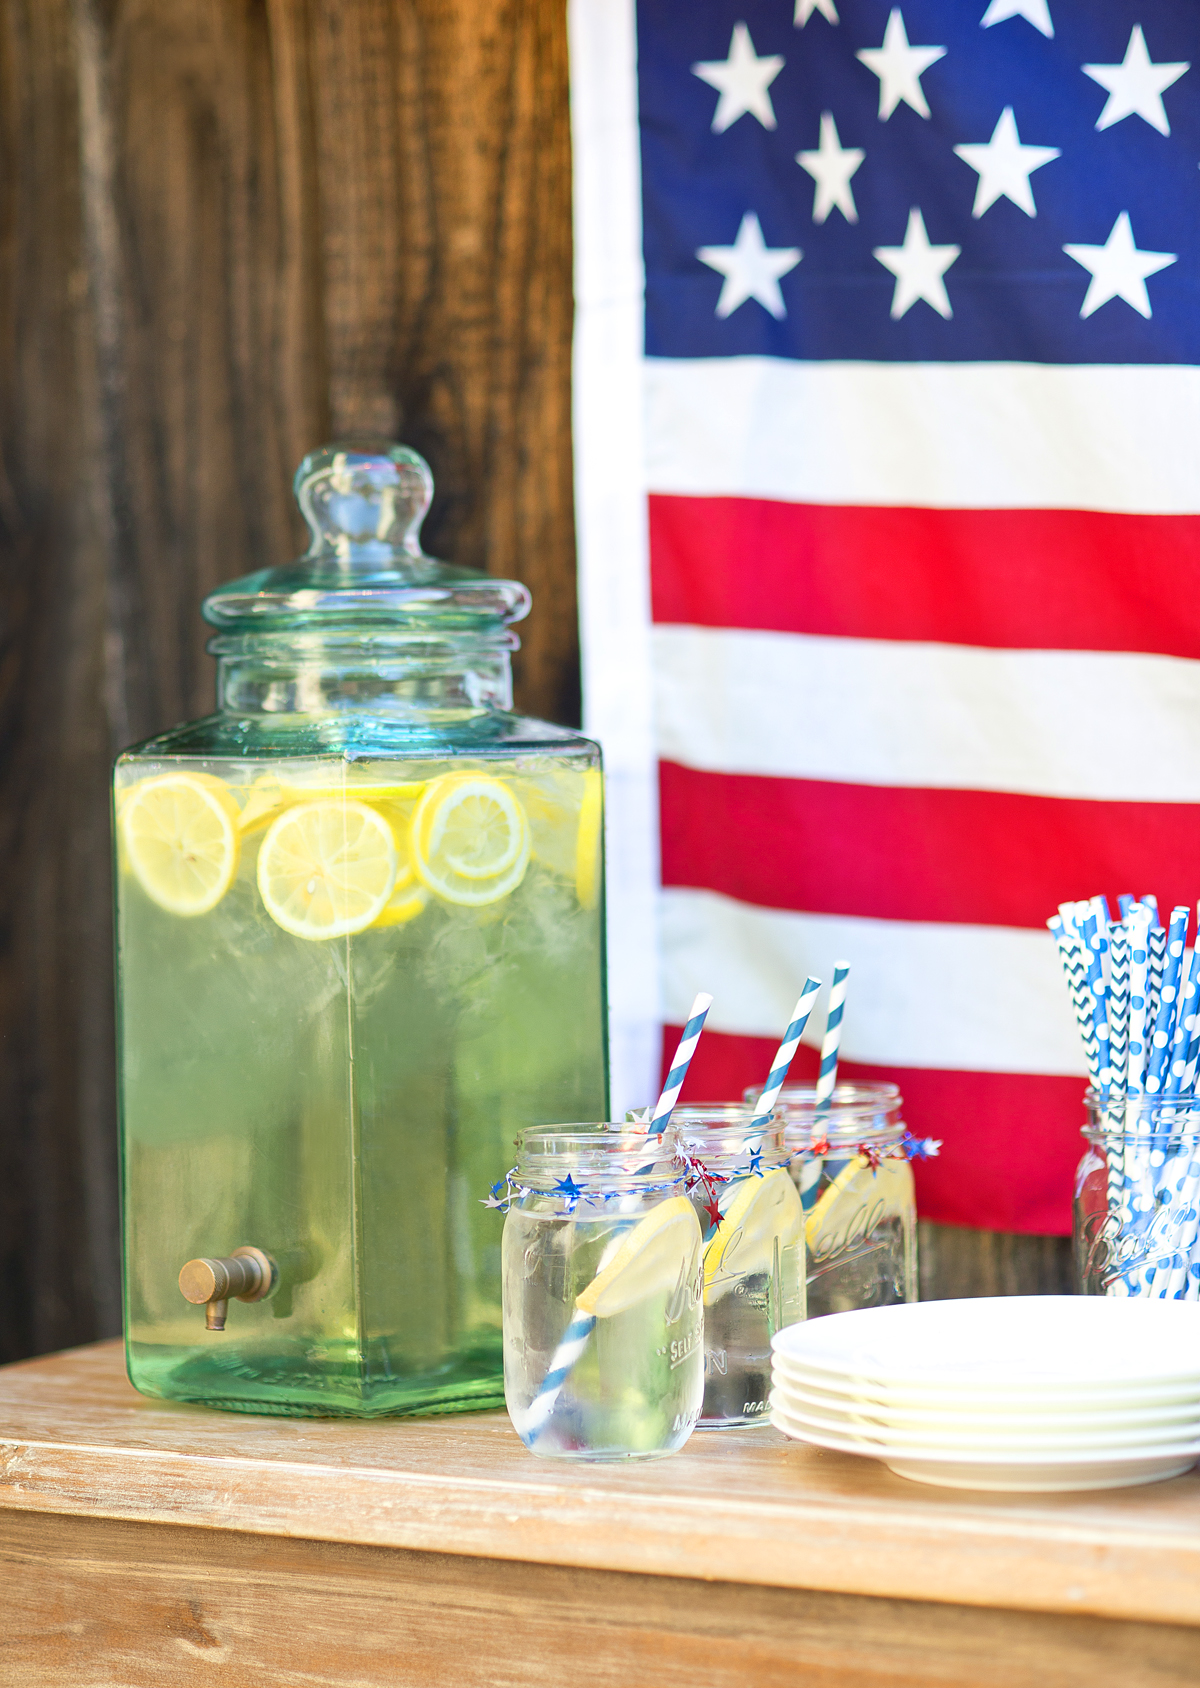 4th of July party inspiration! #4thofjulyparty #4thofjuly #july4th